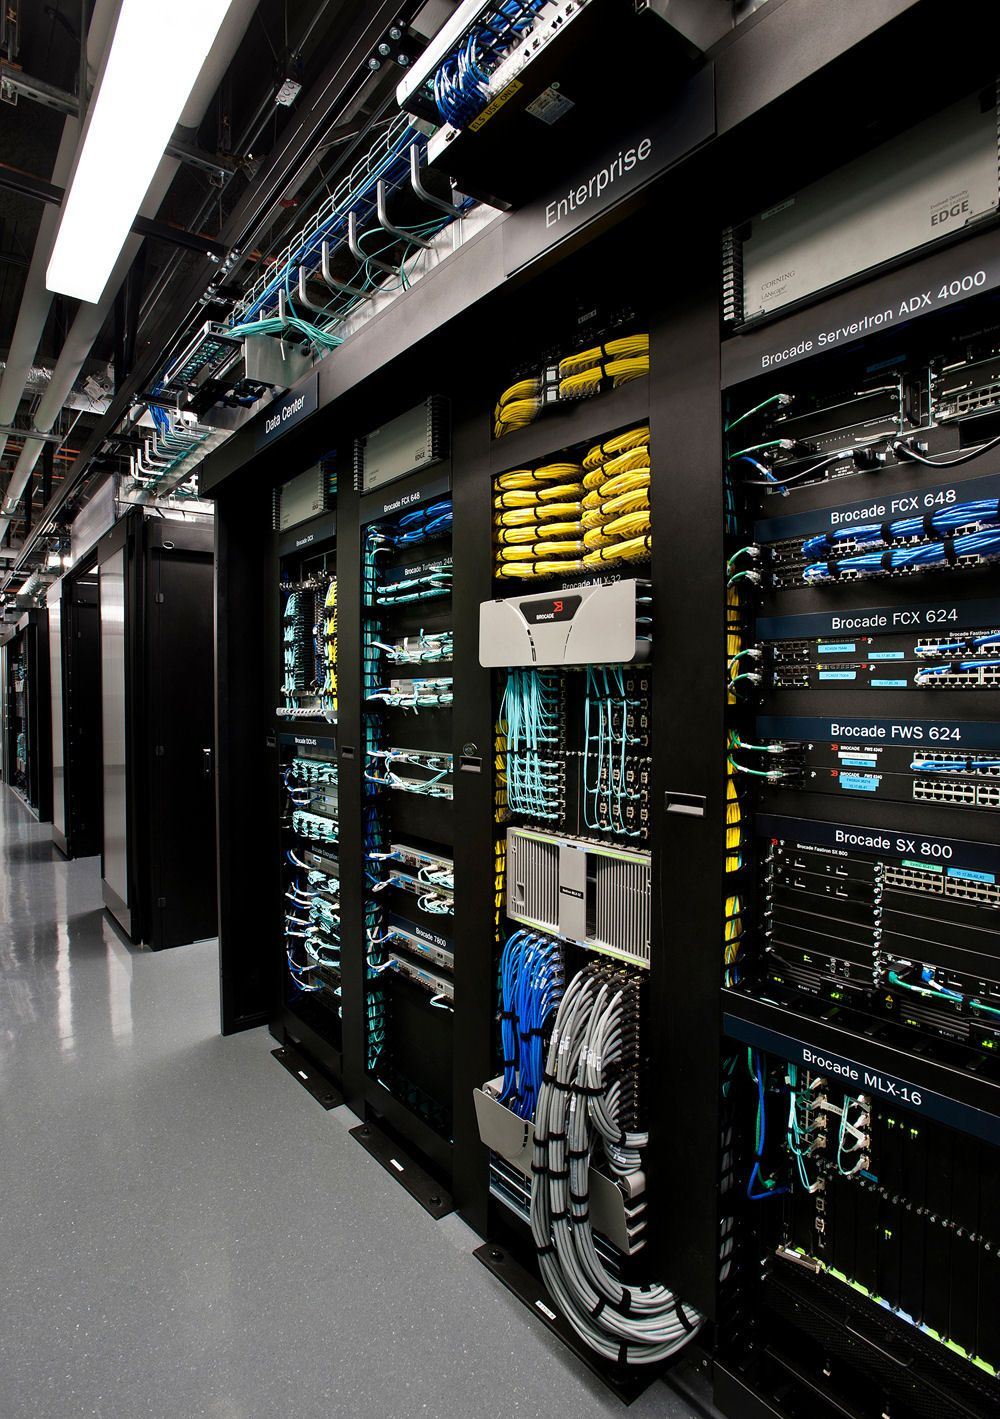 Server Racks In The Brocade Corporate Data Center In San